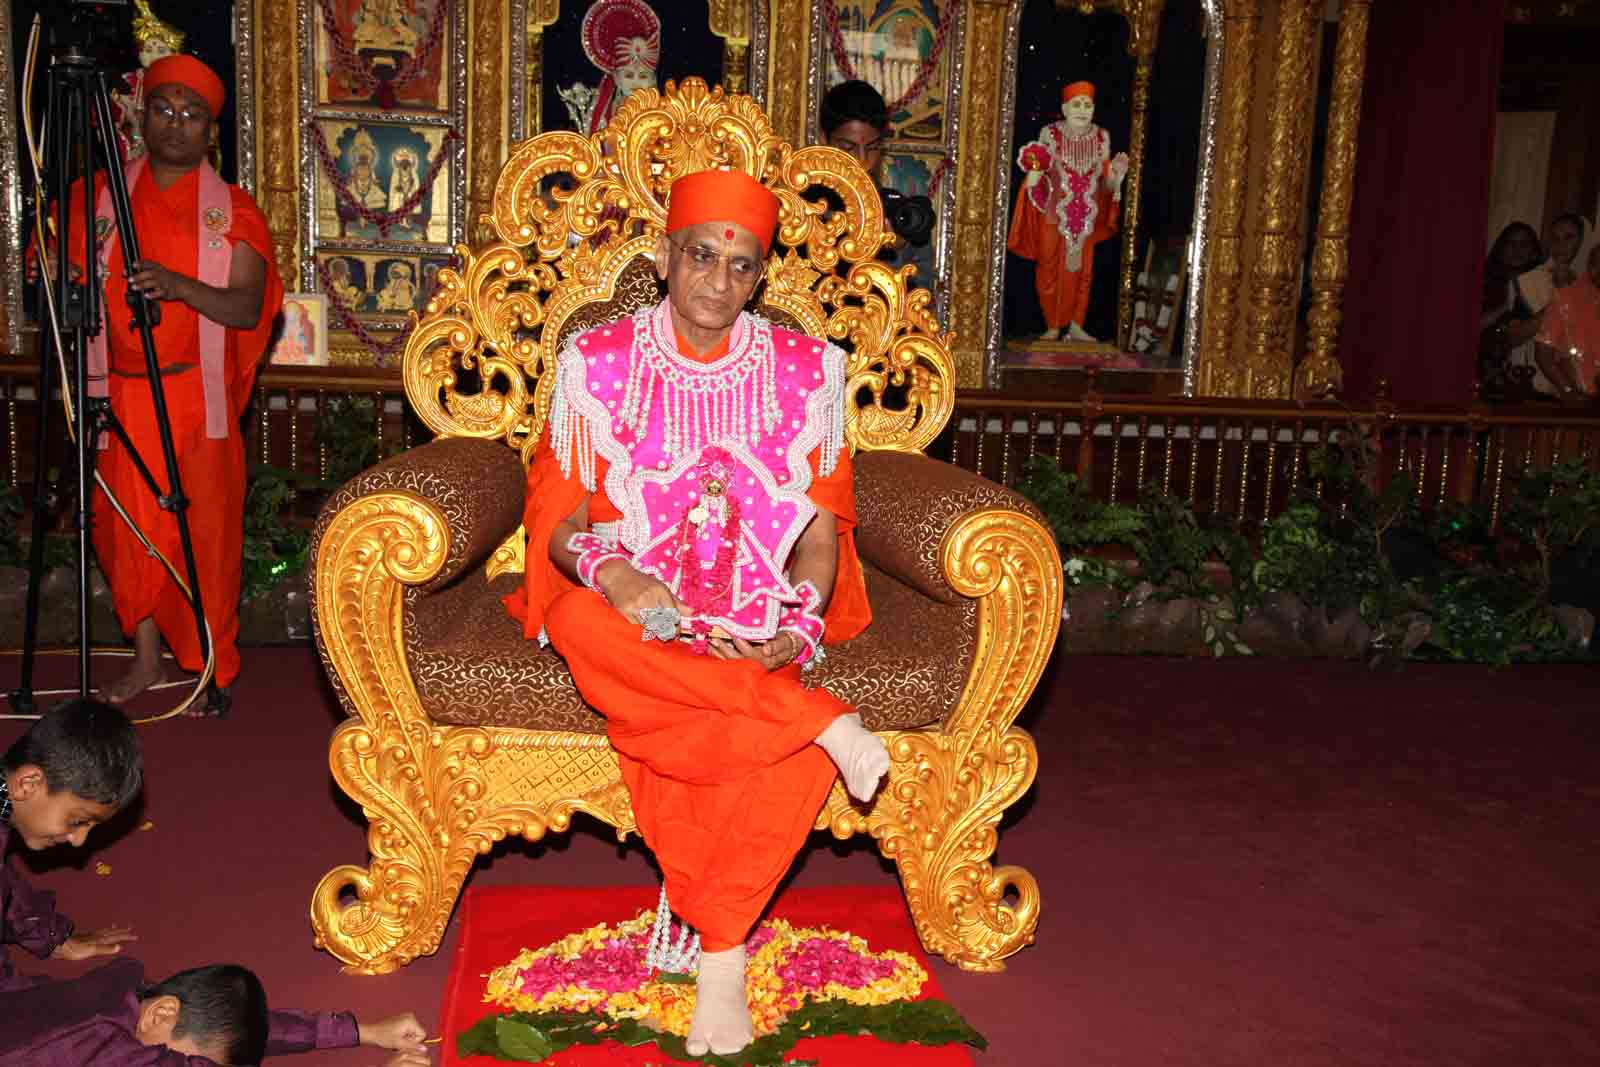 Acharya Swamishree residing on the throne